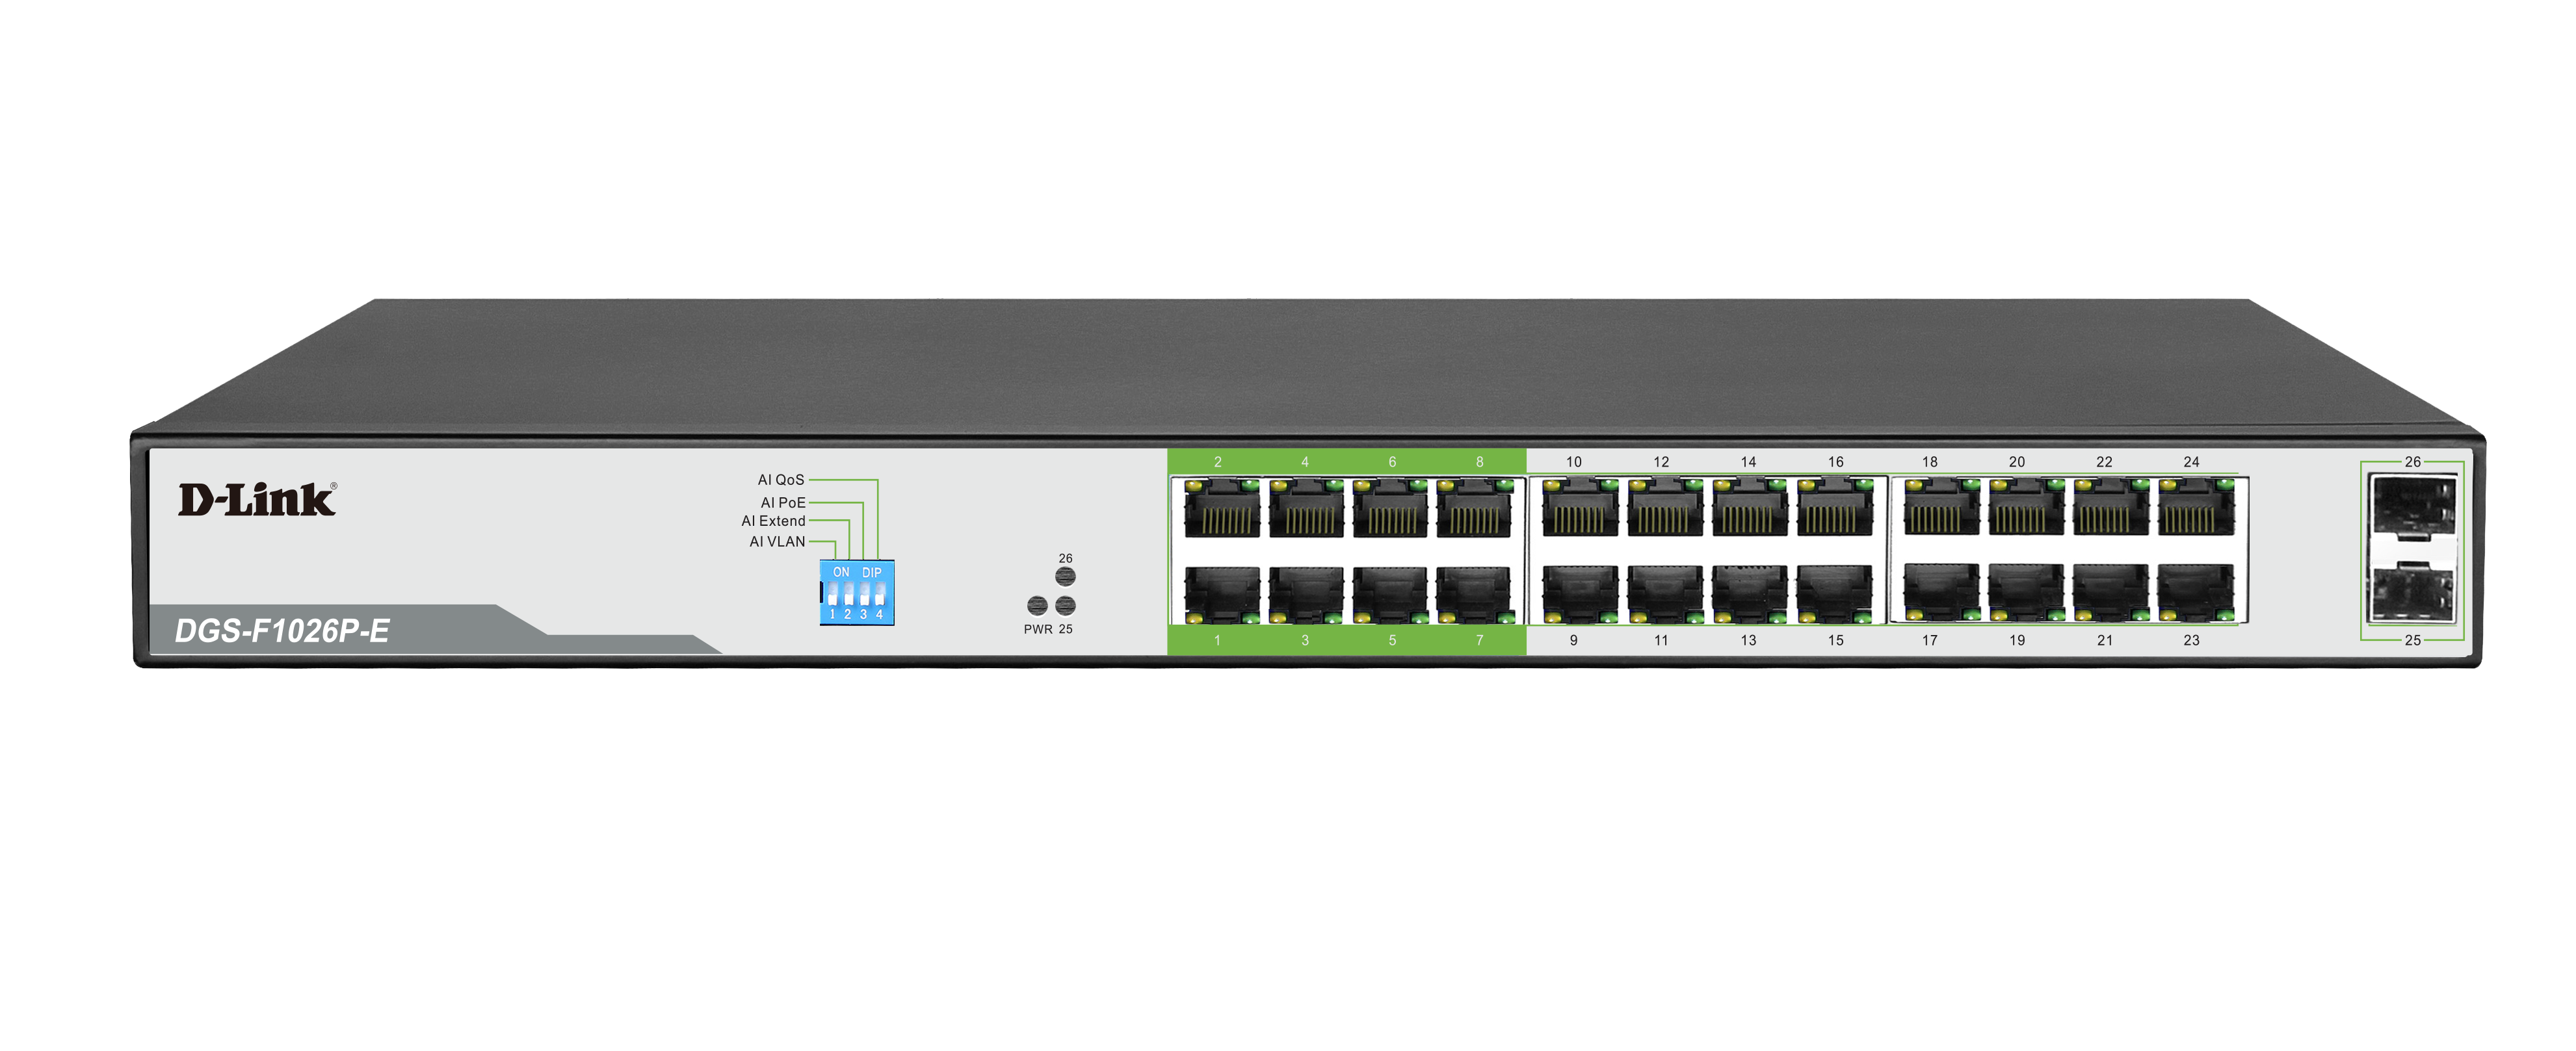 DGS-F1026P-E 250M 24-Port 1000Mbps PoE Switch with 2 SFP Ports